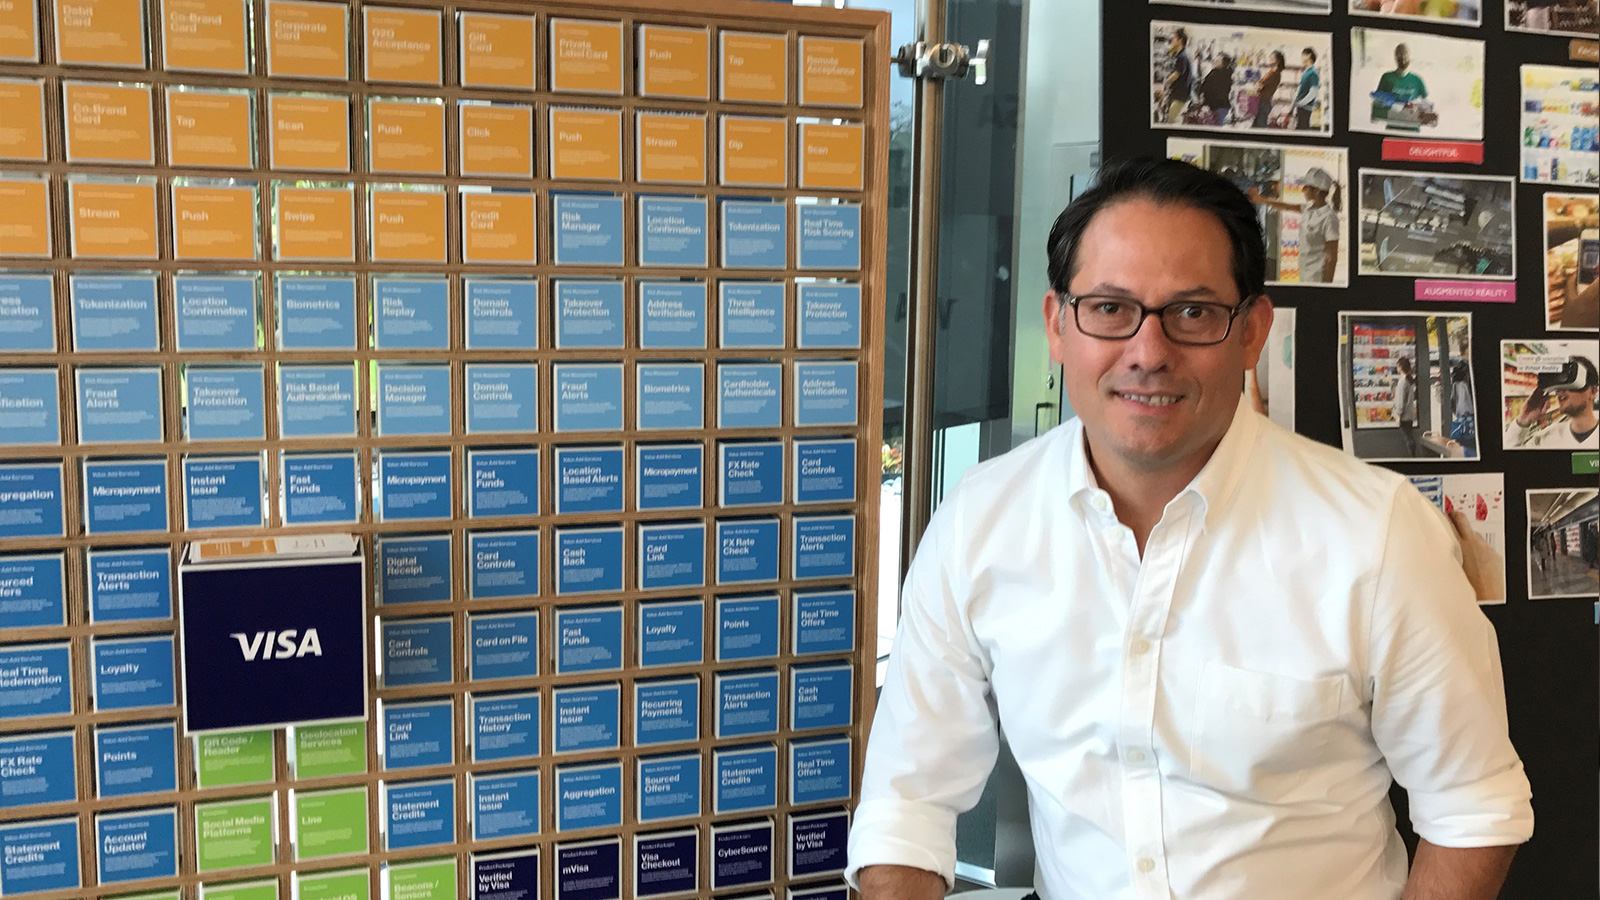 Acelerar transformacion digital pagos